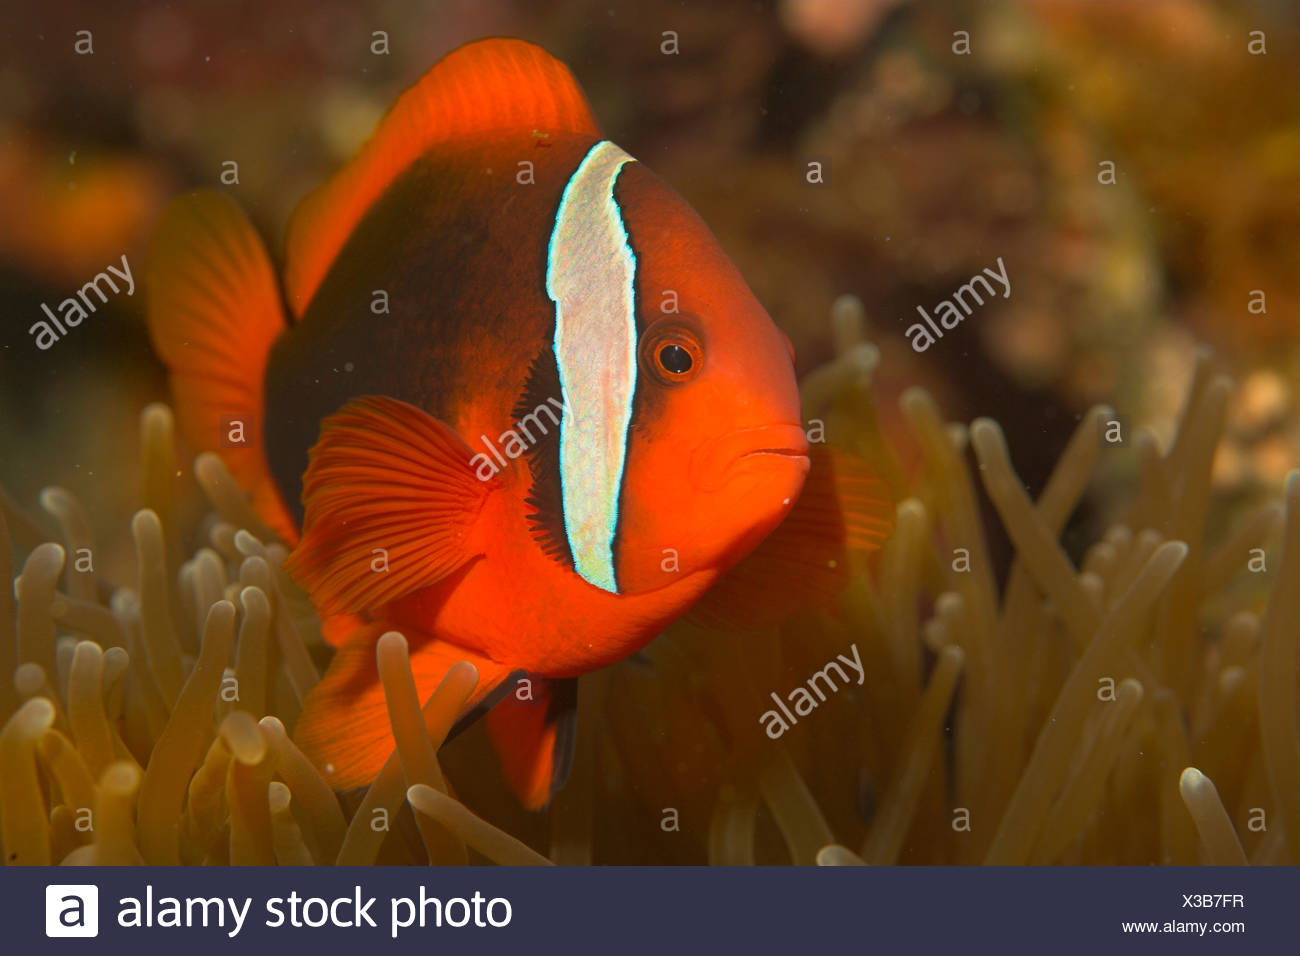 Bridled anenome fish, Amphiprion frenatus. - Stock Image